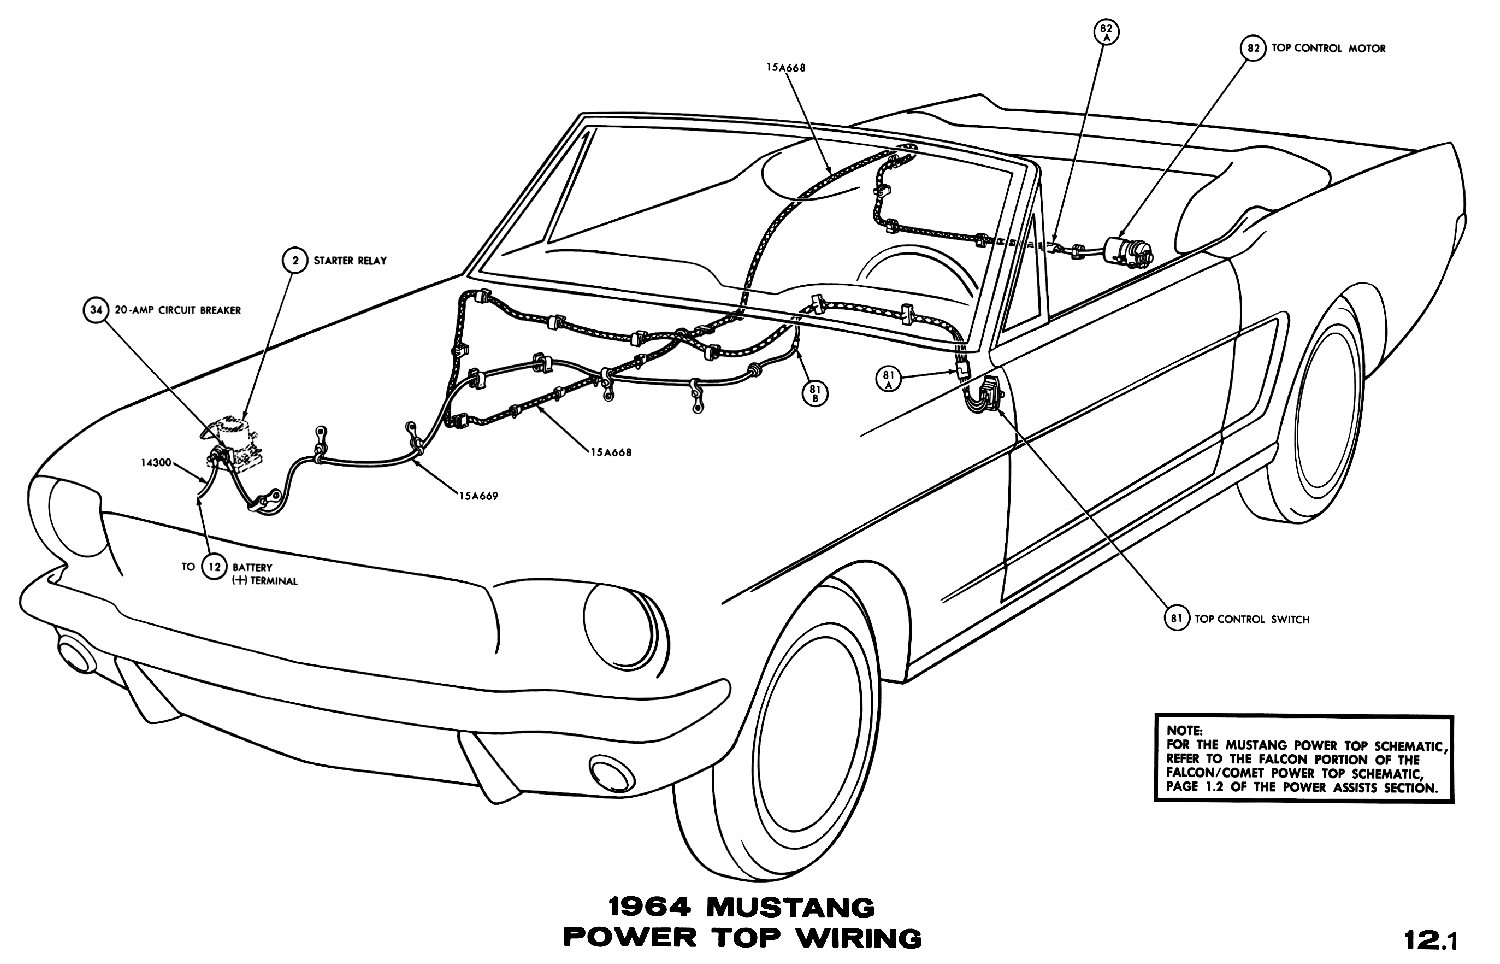 Wiring Diagram PDF: 2002 Mustang Wiring Diagram